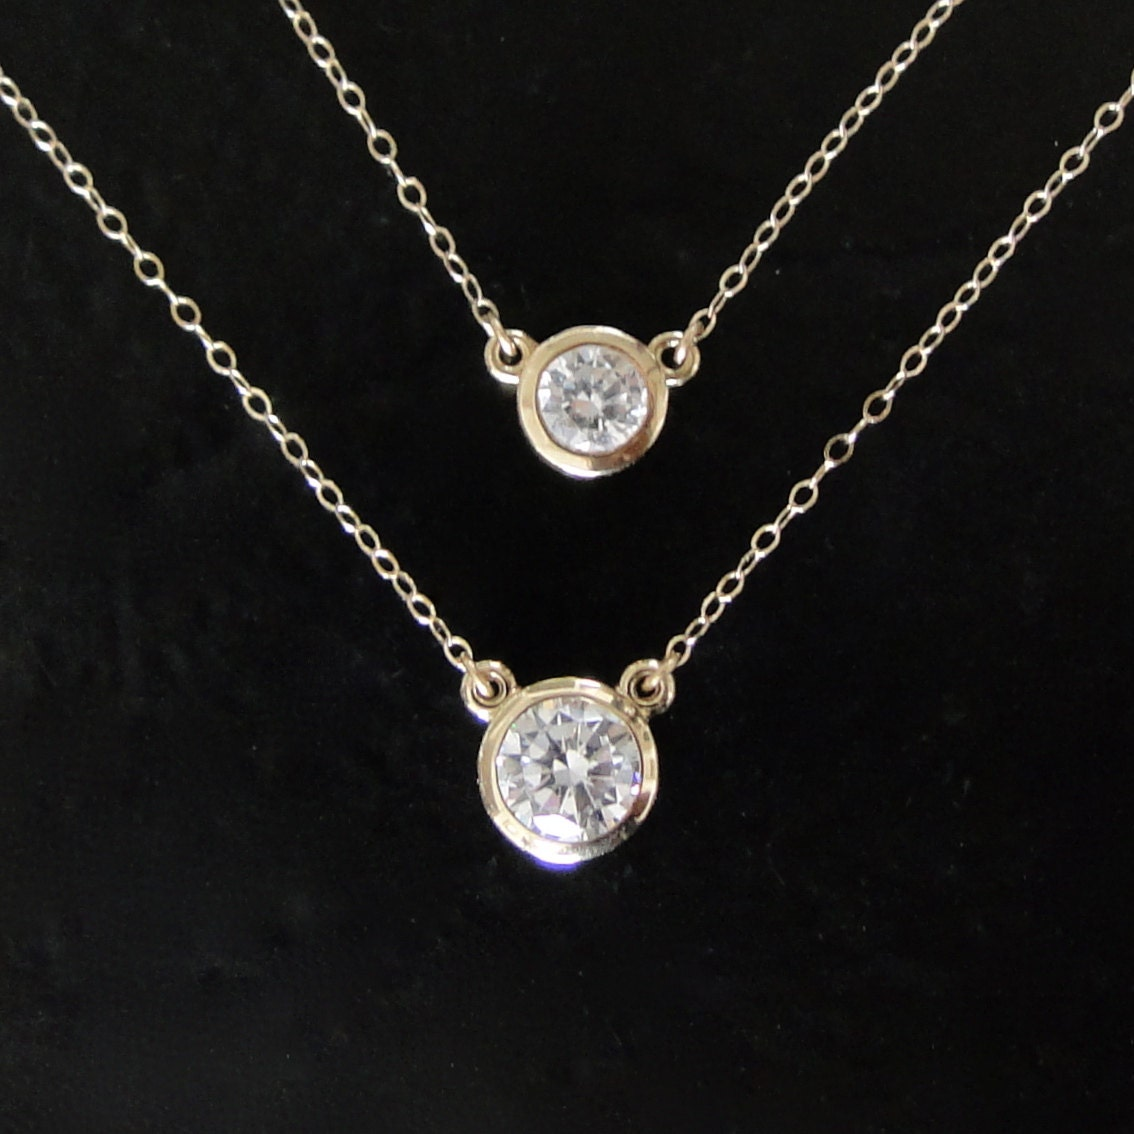 j gold open circle carat fullxfull pendant il necklace product r white evvz diamond jewels